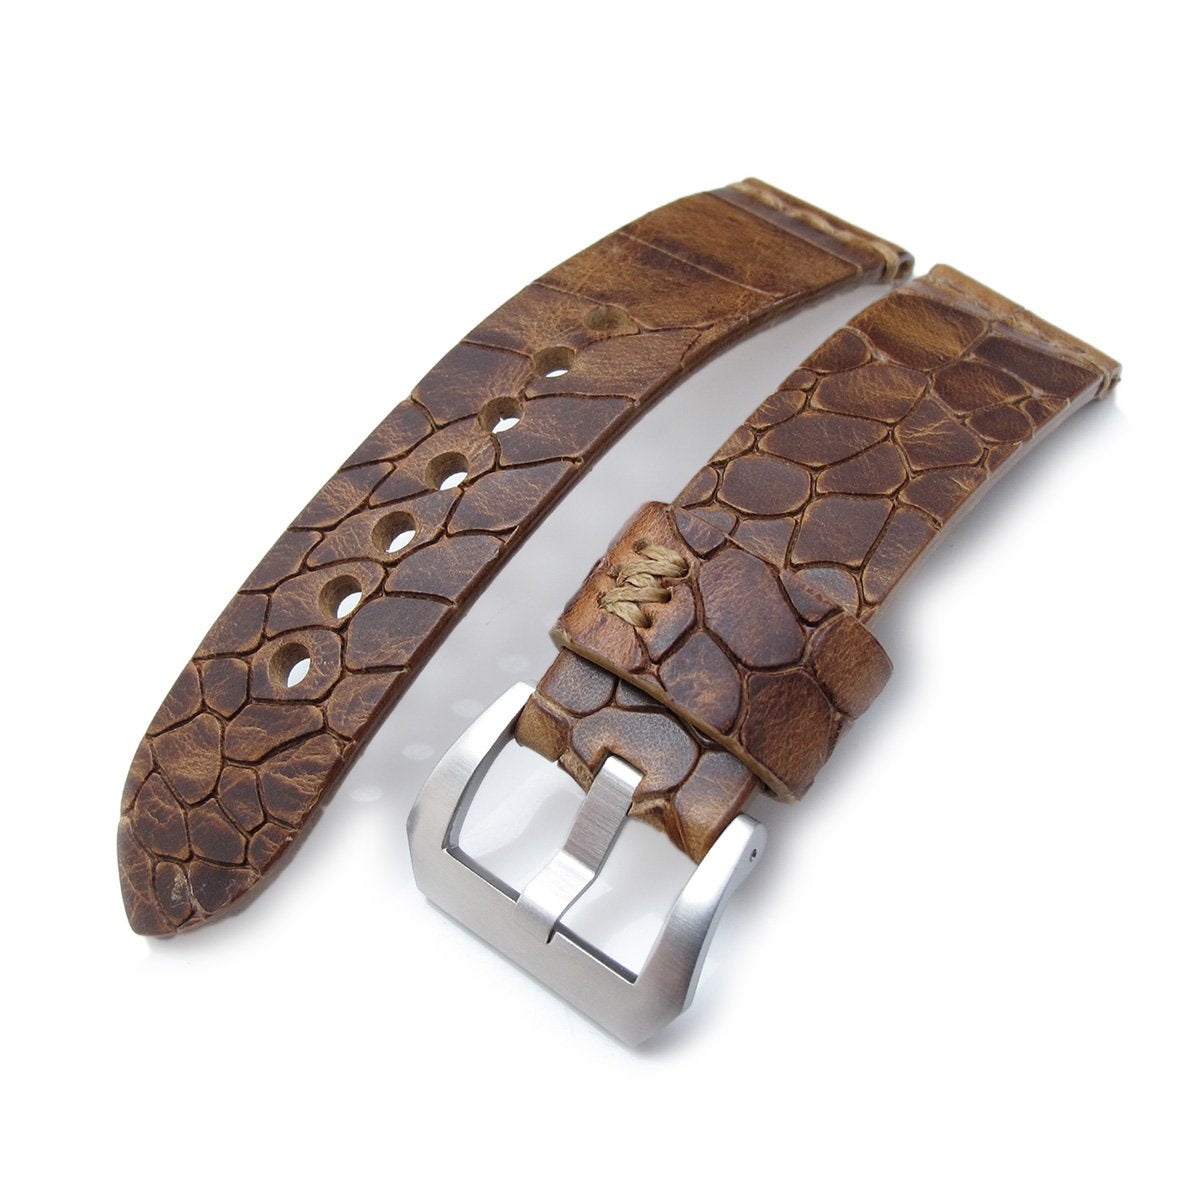 MiLTAT Zizz Collection 24mm Cracked Croco Middle Brown Watch Strap Brown Stitching Strapcode Watch Bands